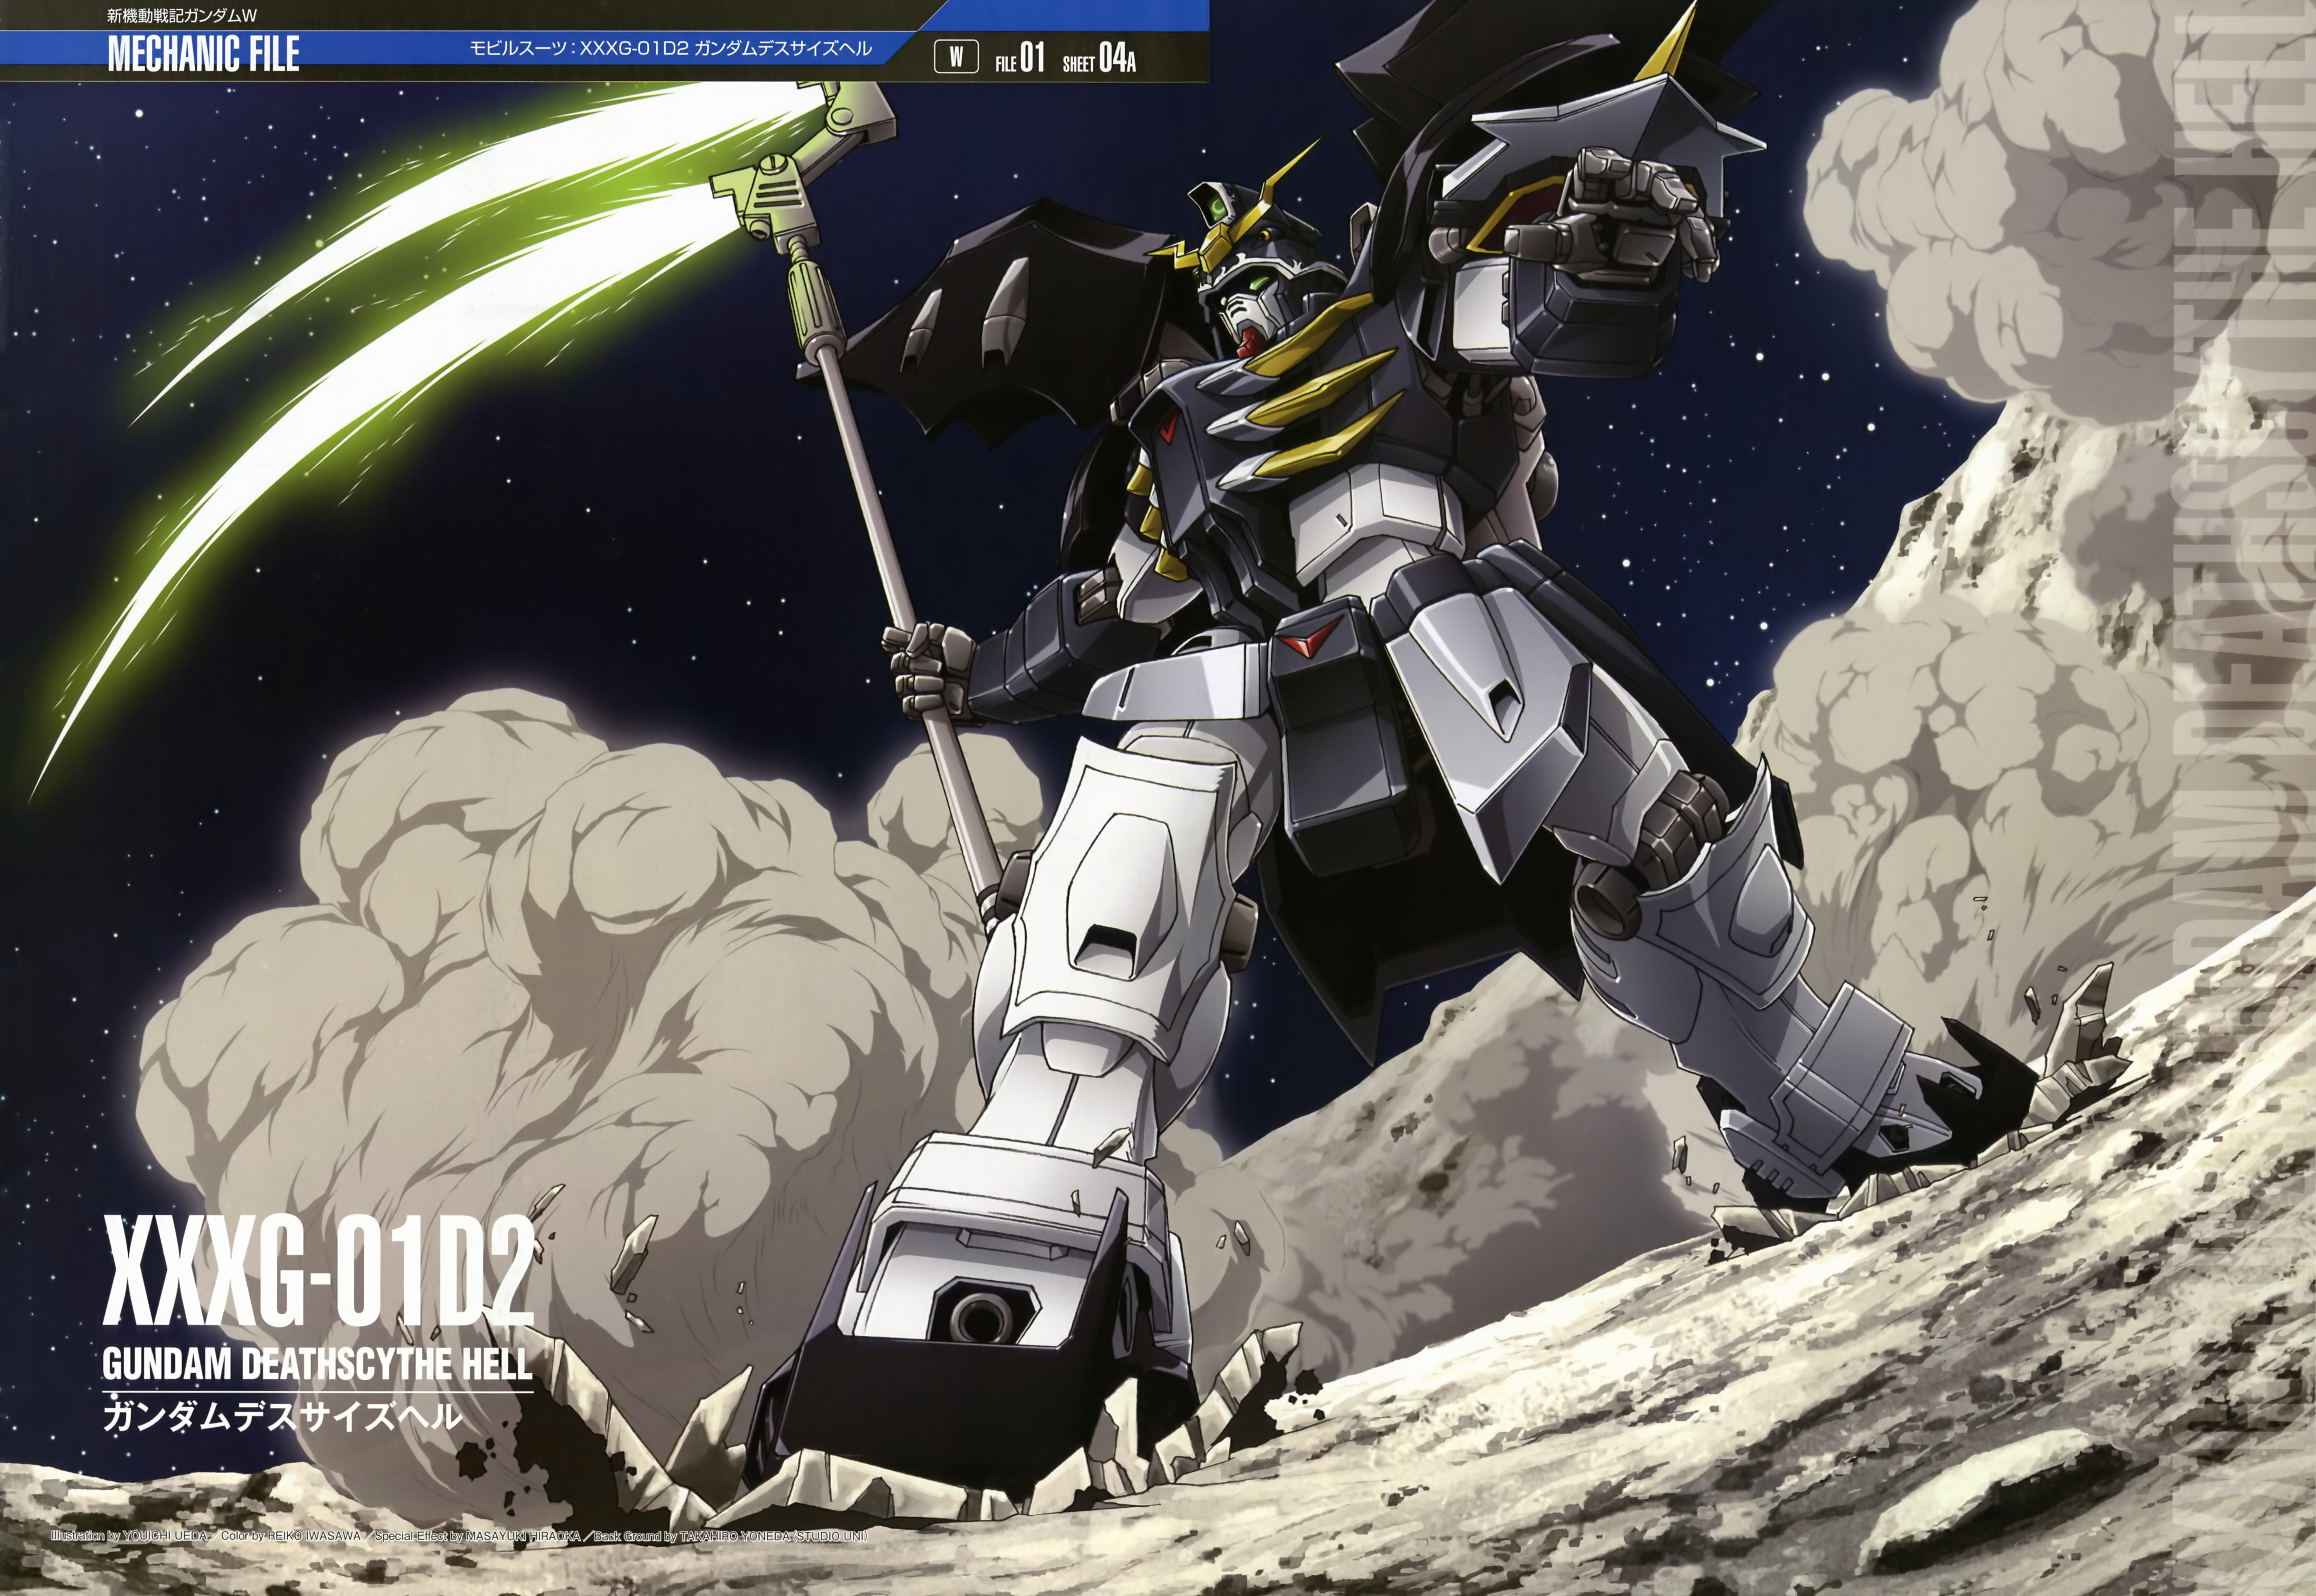 Mobile Suit Gundam Wing Wallpaper And Scan Gallery Minitokyo